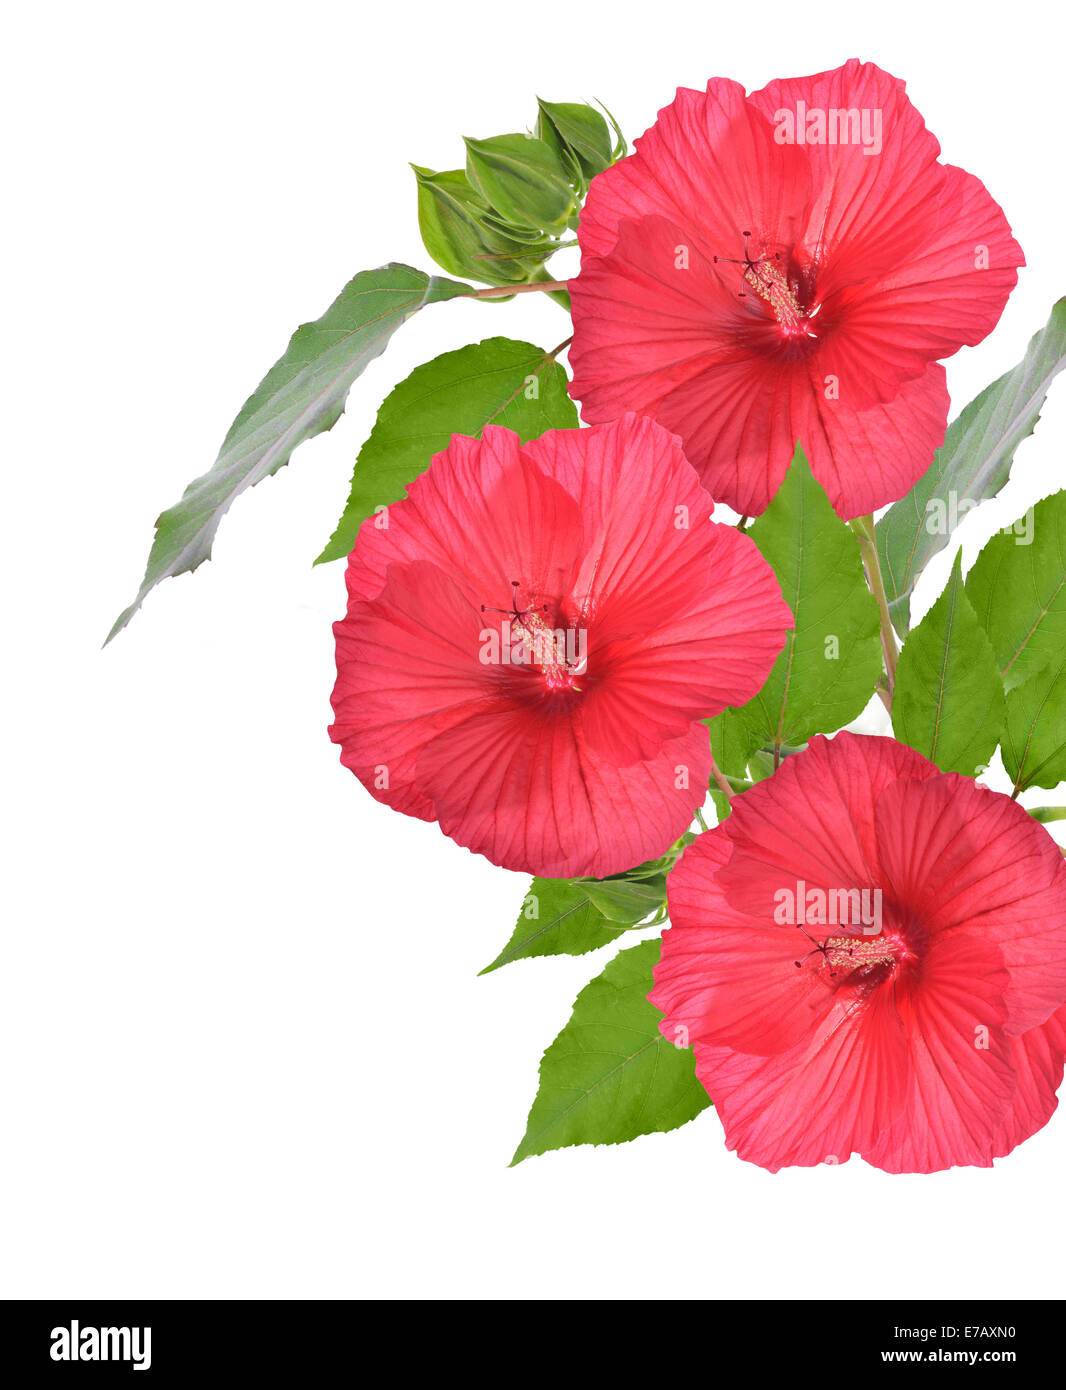 Hibiscus red bush not closeup stock photos hibiscus red bush not red hibiscus flowers isolated on white background stock image izmirmasajfo Image collections